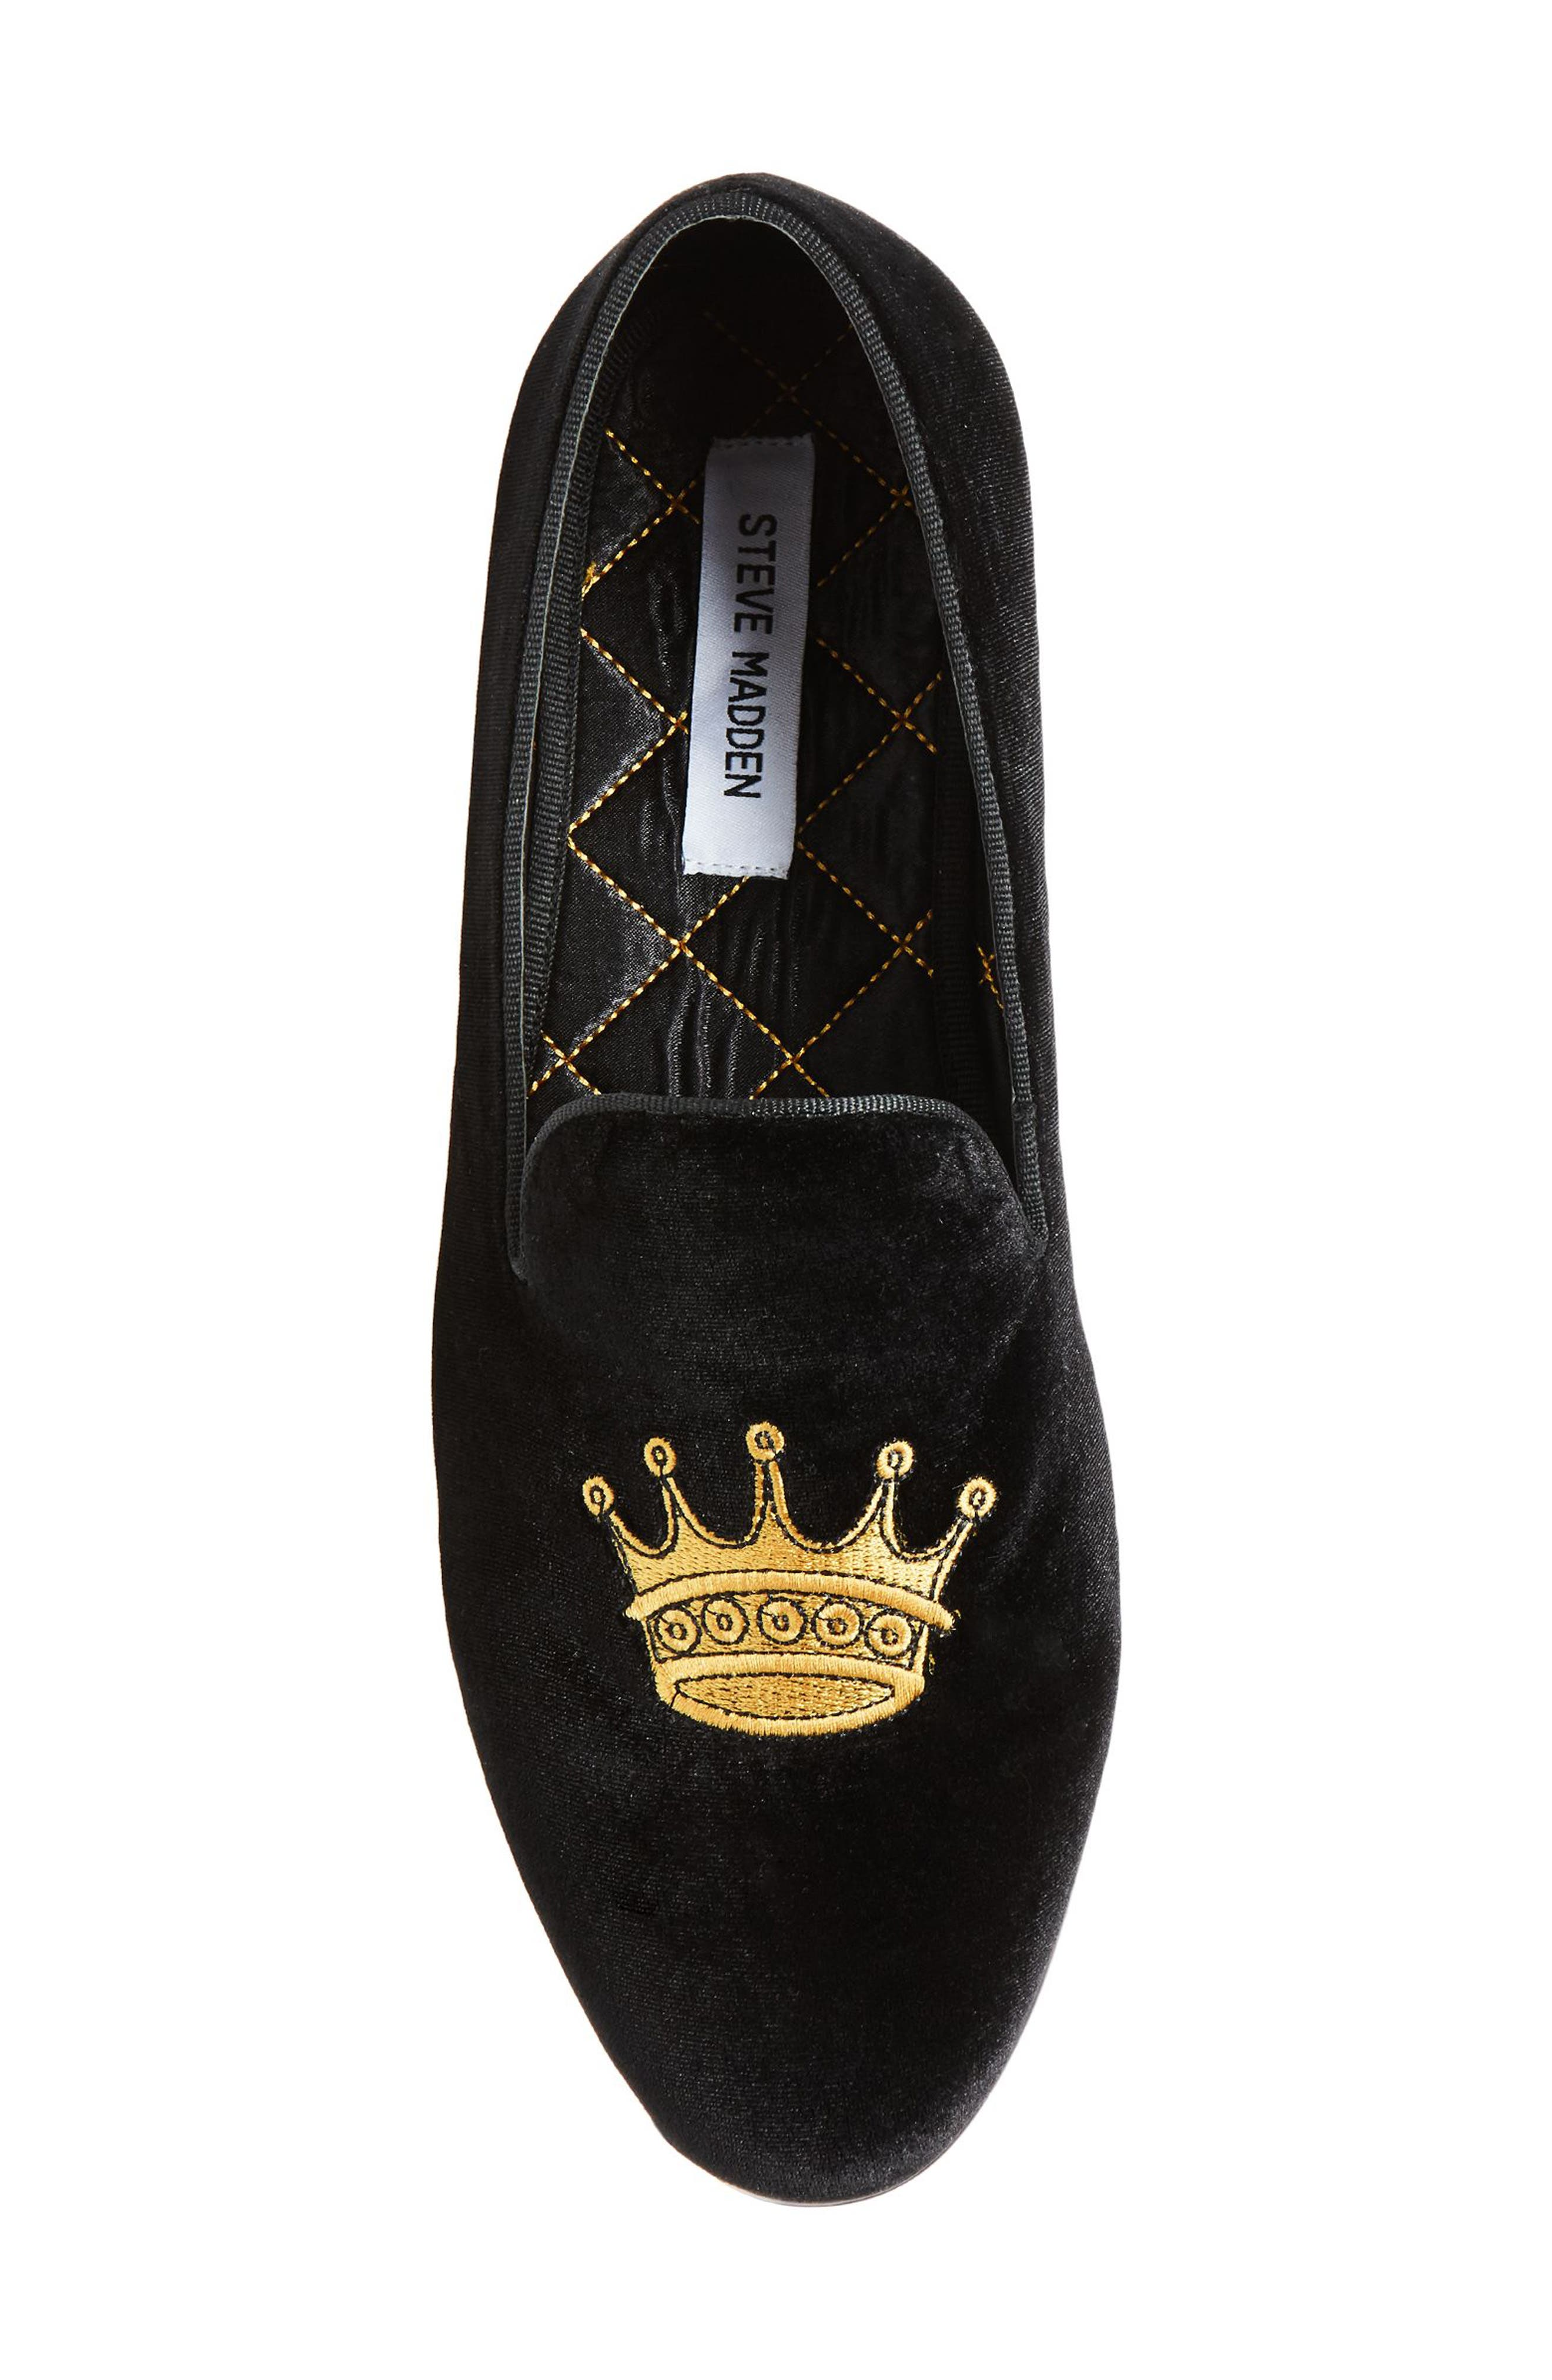 Crowne Loafer,                             Alternate thumbnail 5, color,                             001